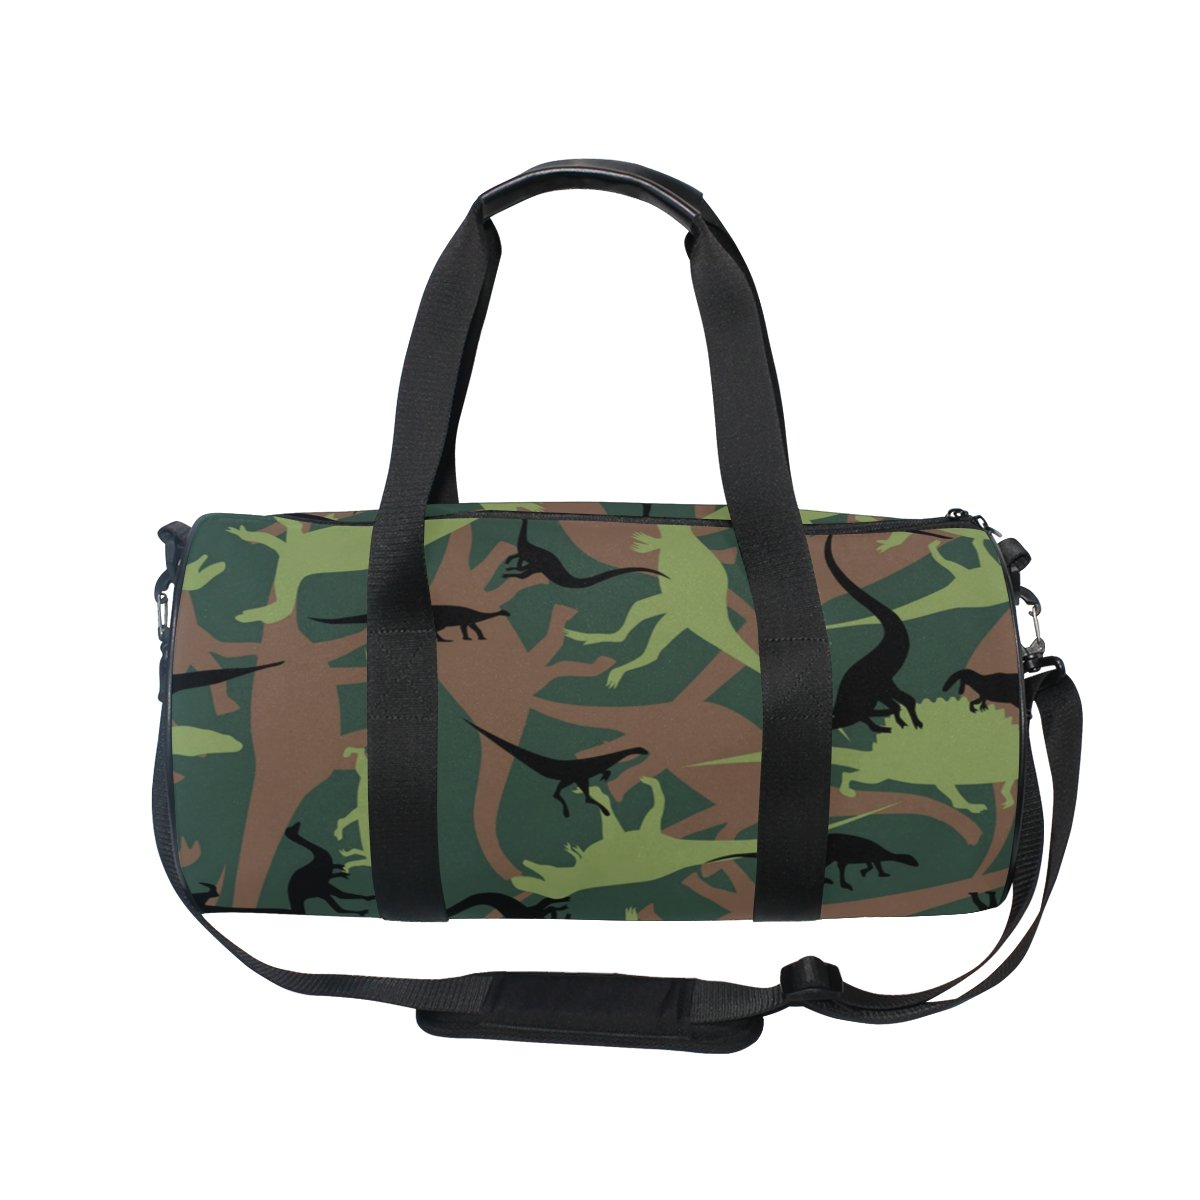 Naanle Dinosaur Camouflage Pattern Army Military Texture Camo Gym bag Sports Travel Duffle Bags for Men Women Boys Girls Kids by Naanle (Image #2)